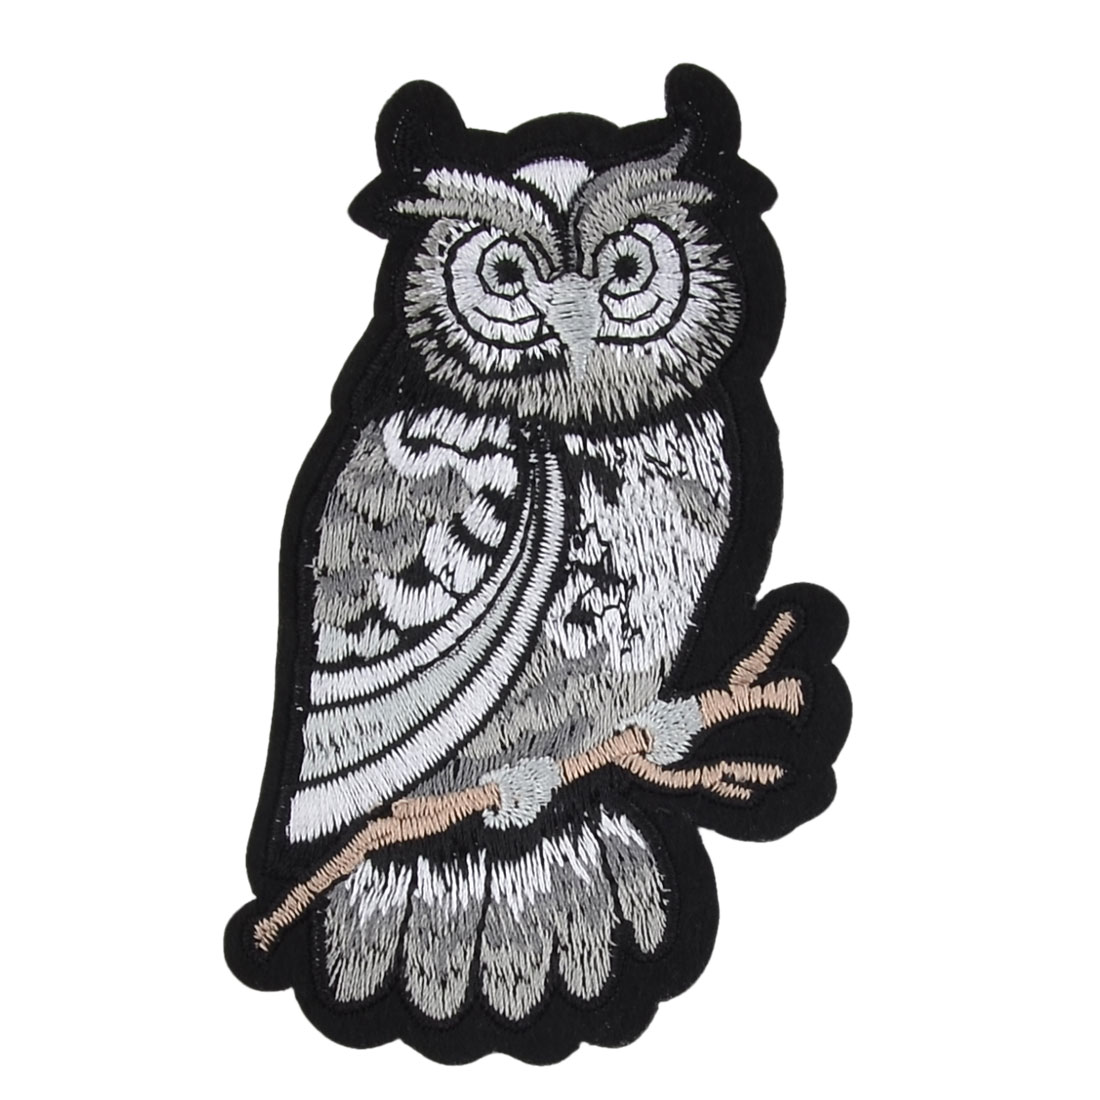 Unique Bargains Polyester Owl Design Diy Sewing Trimming Hag